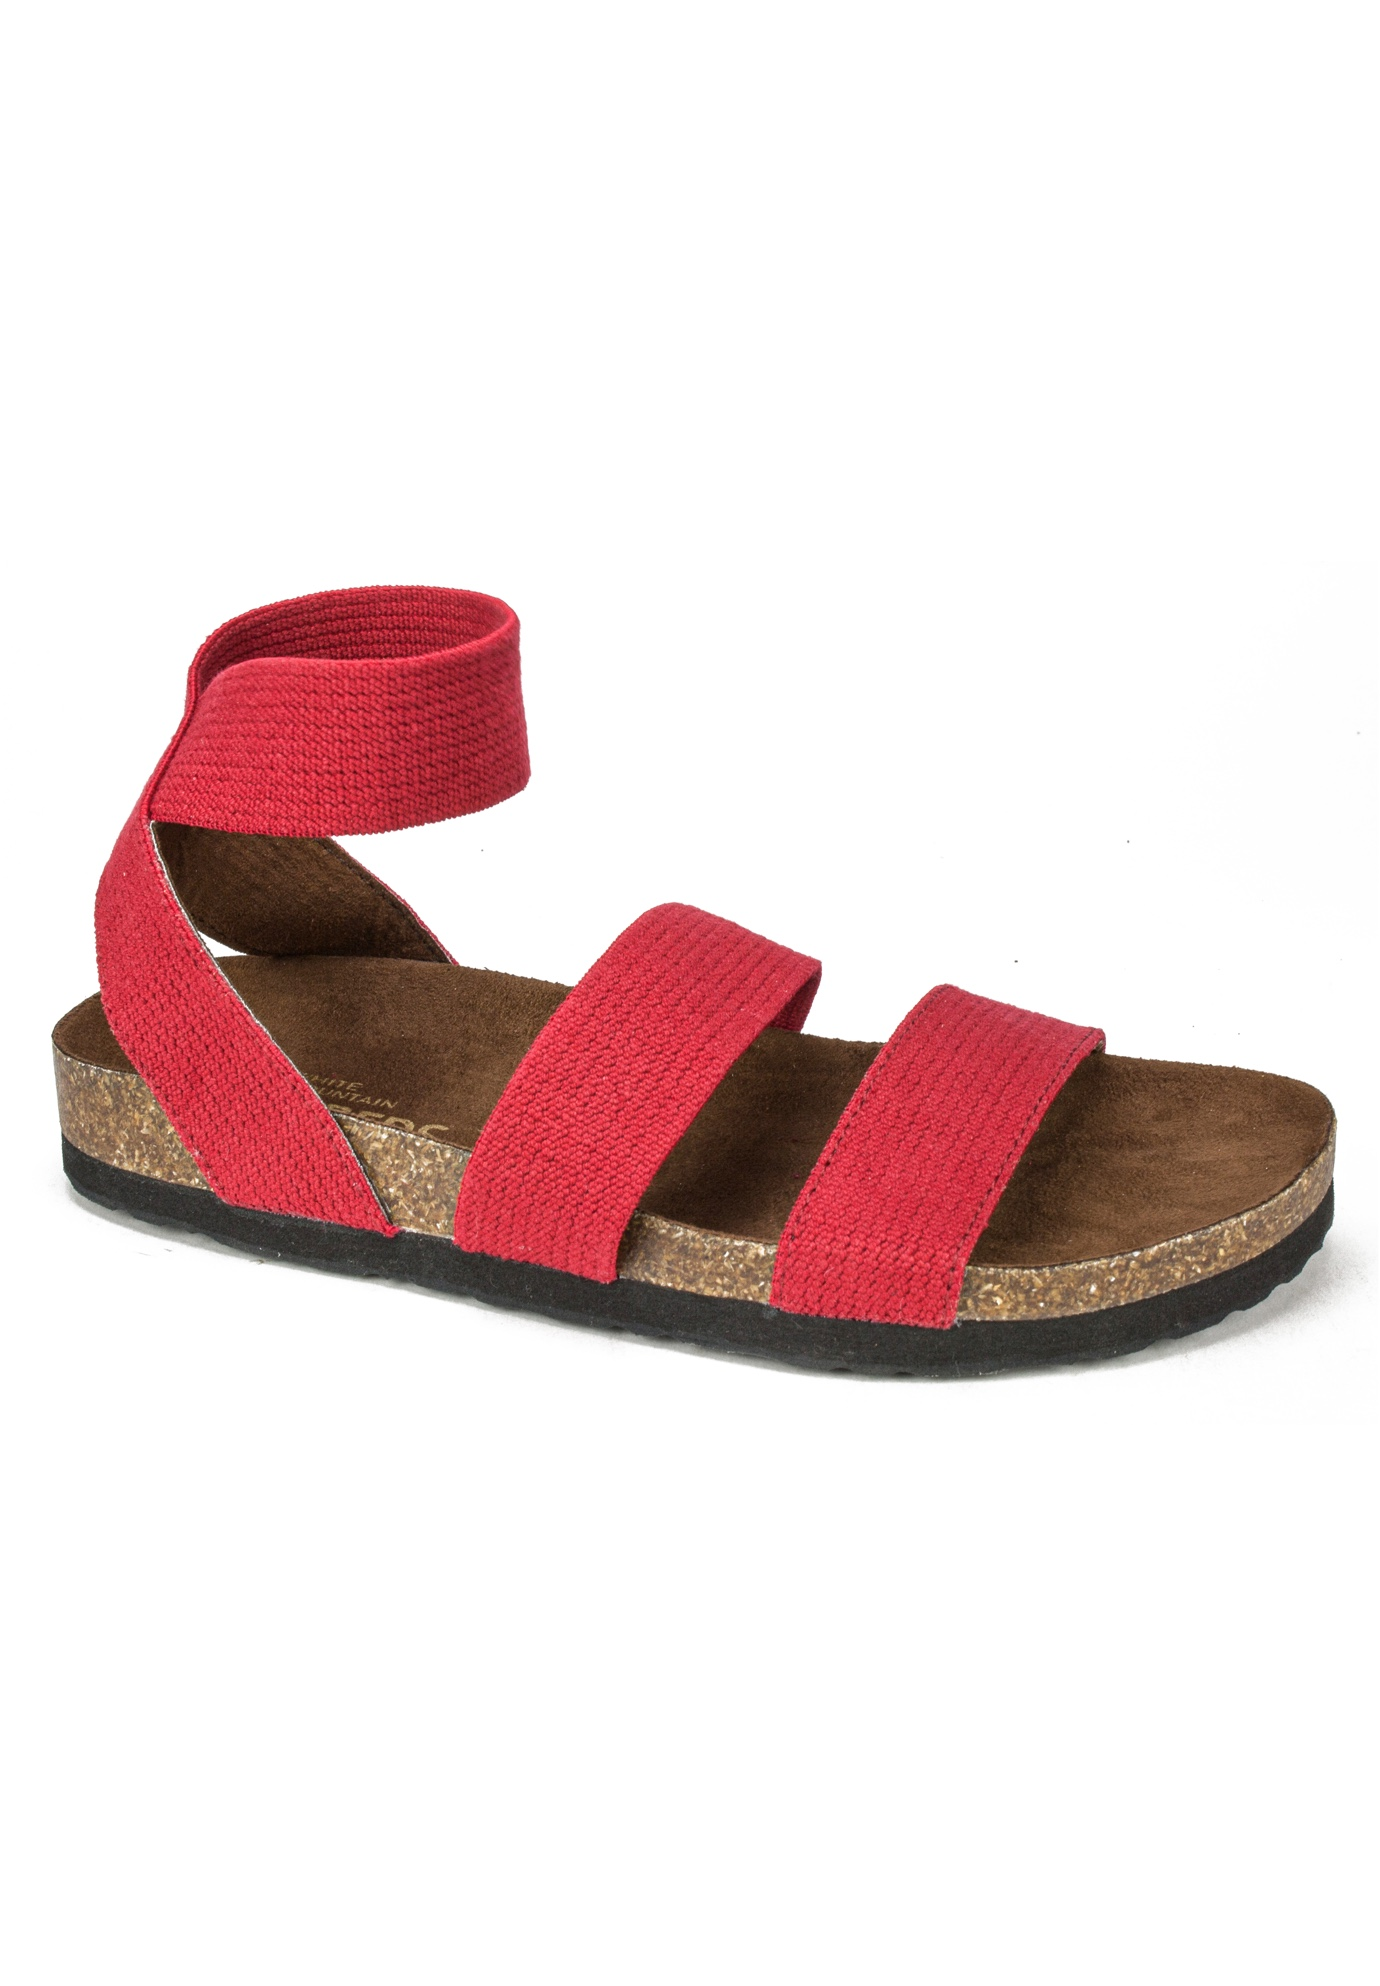 Harlequin Sandal by White Mountain,